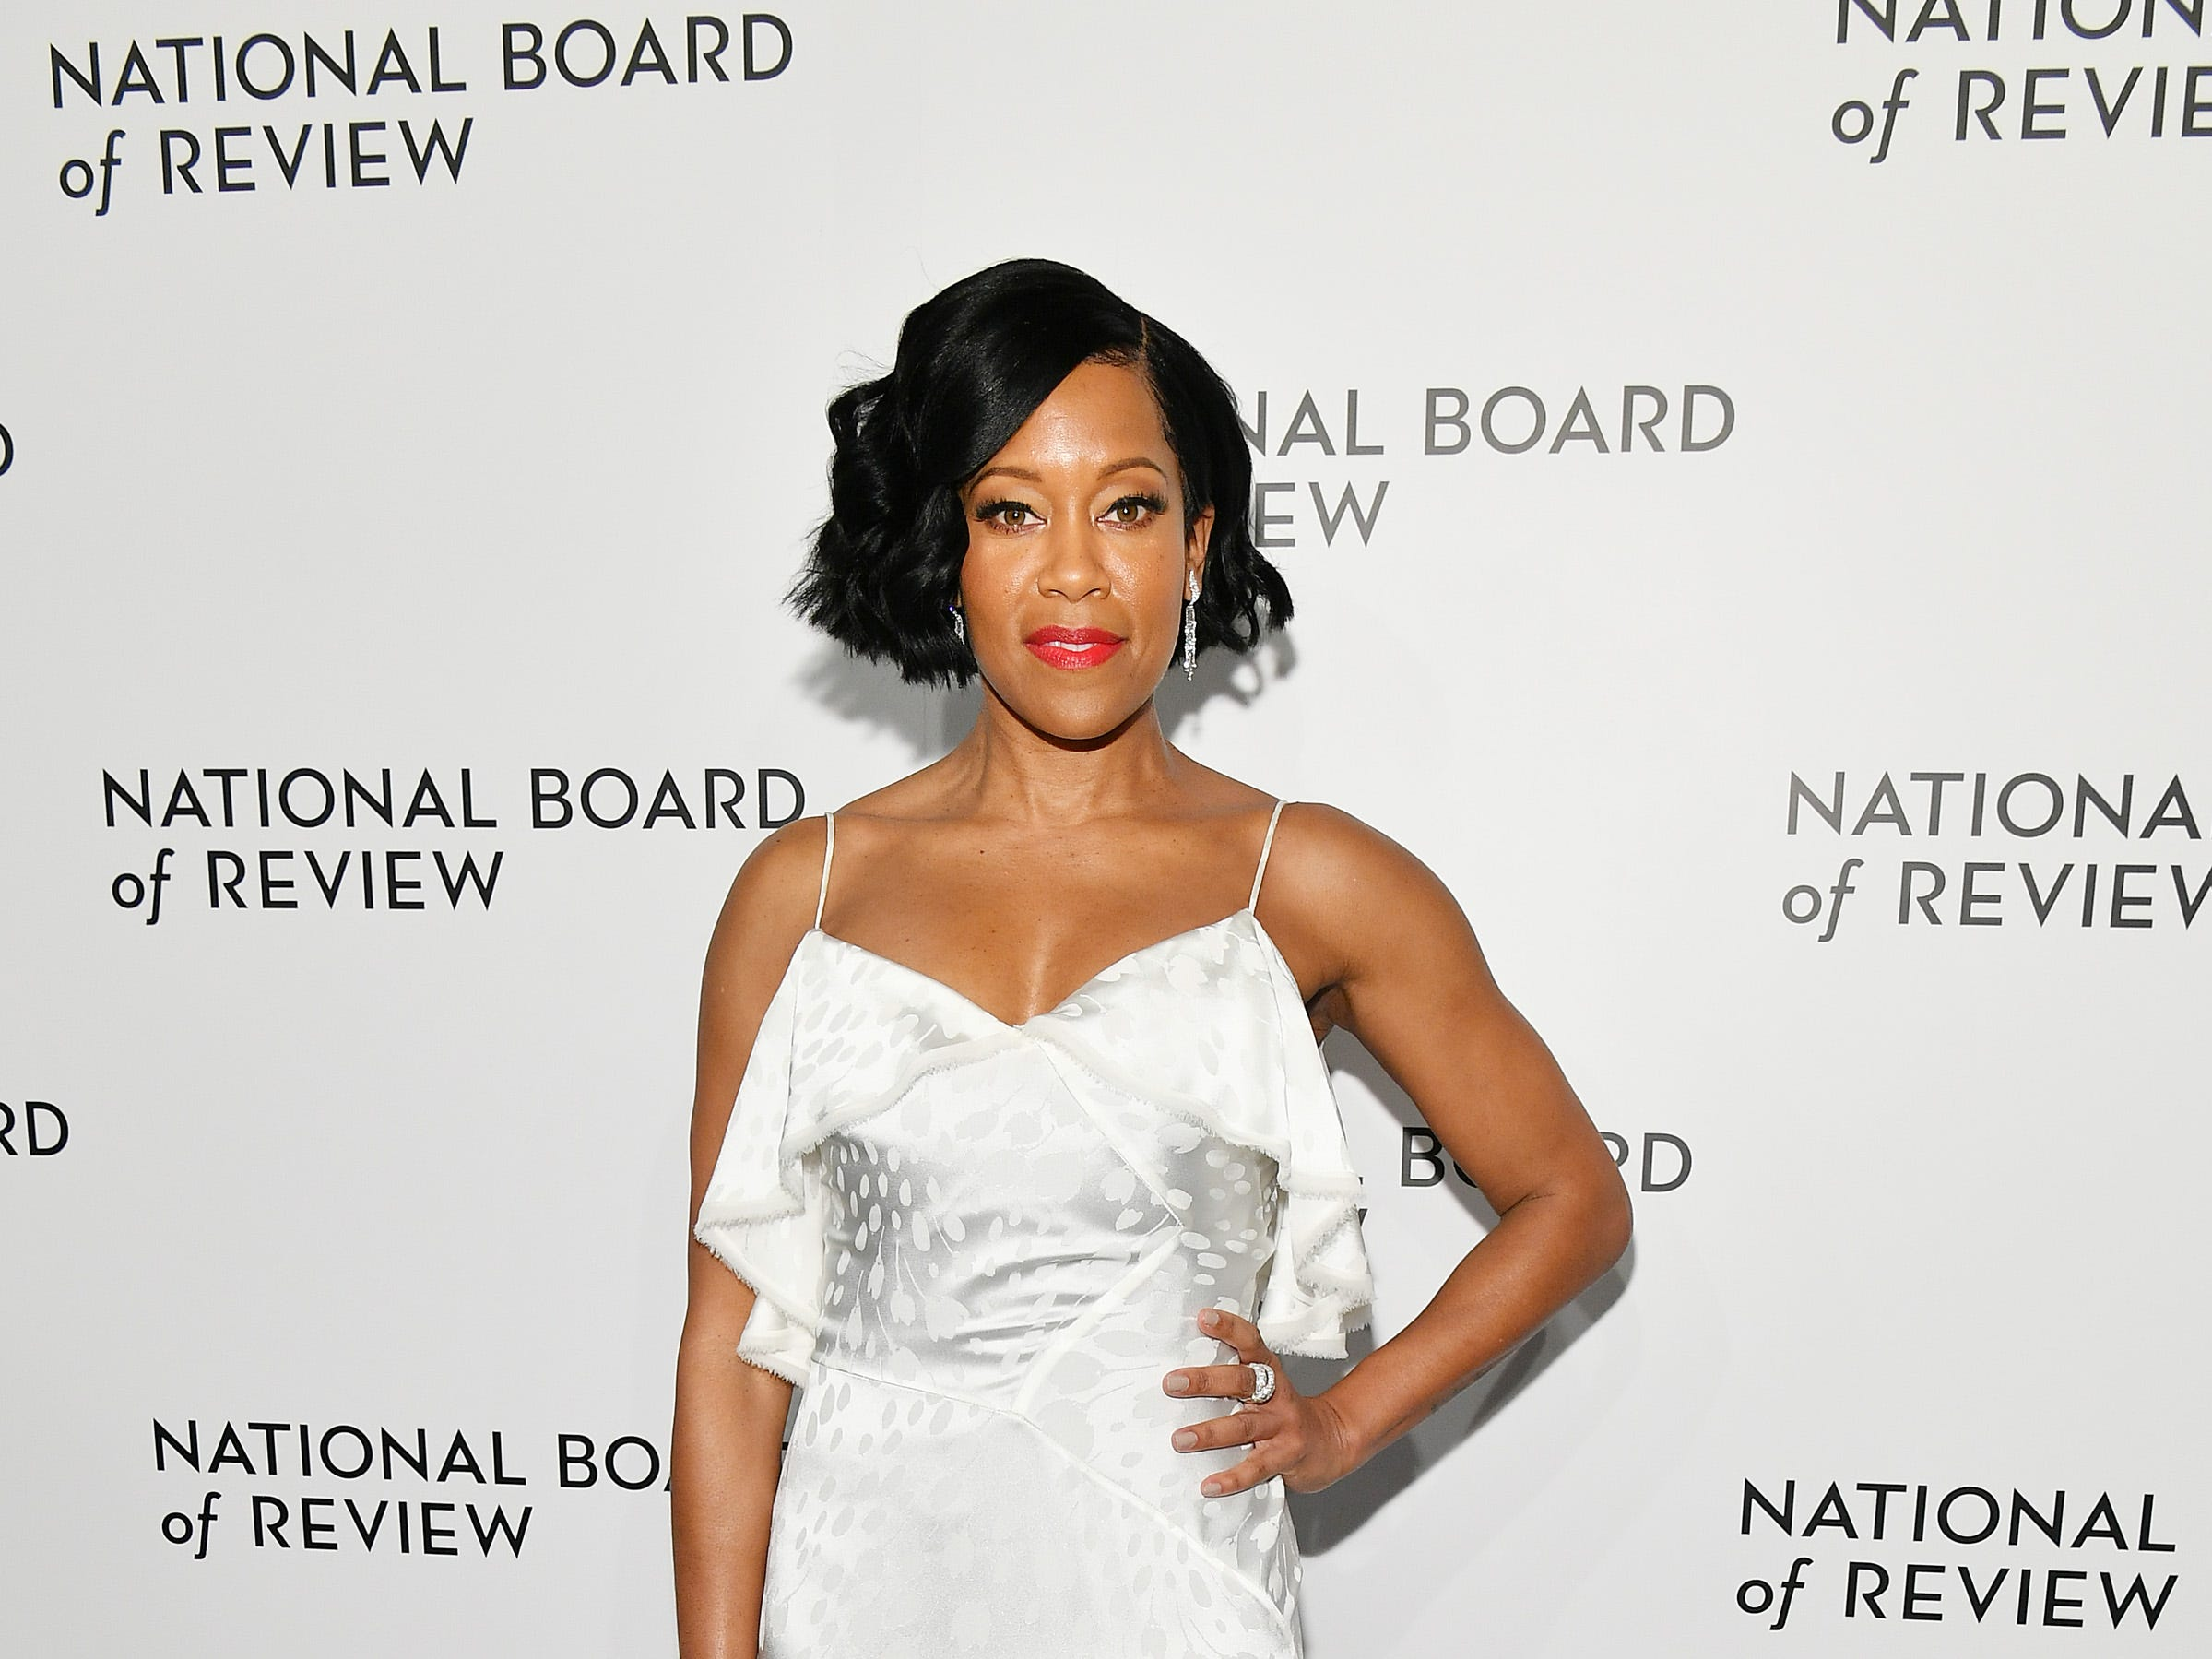 NEW YORK, NY - JANUARY 08:  Regina King attends The National Board of Review Annual Awards Gala at Cipriani 42nd Street on January 8, 2019 in New York City.  (Photo by Dia Dipasupil/Getty Images for National Board of Review) ORG XMIT: 775259363 ORIG FILE ID: 1079453156